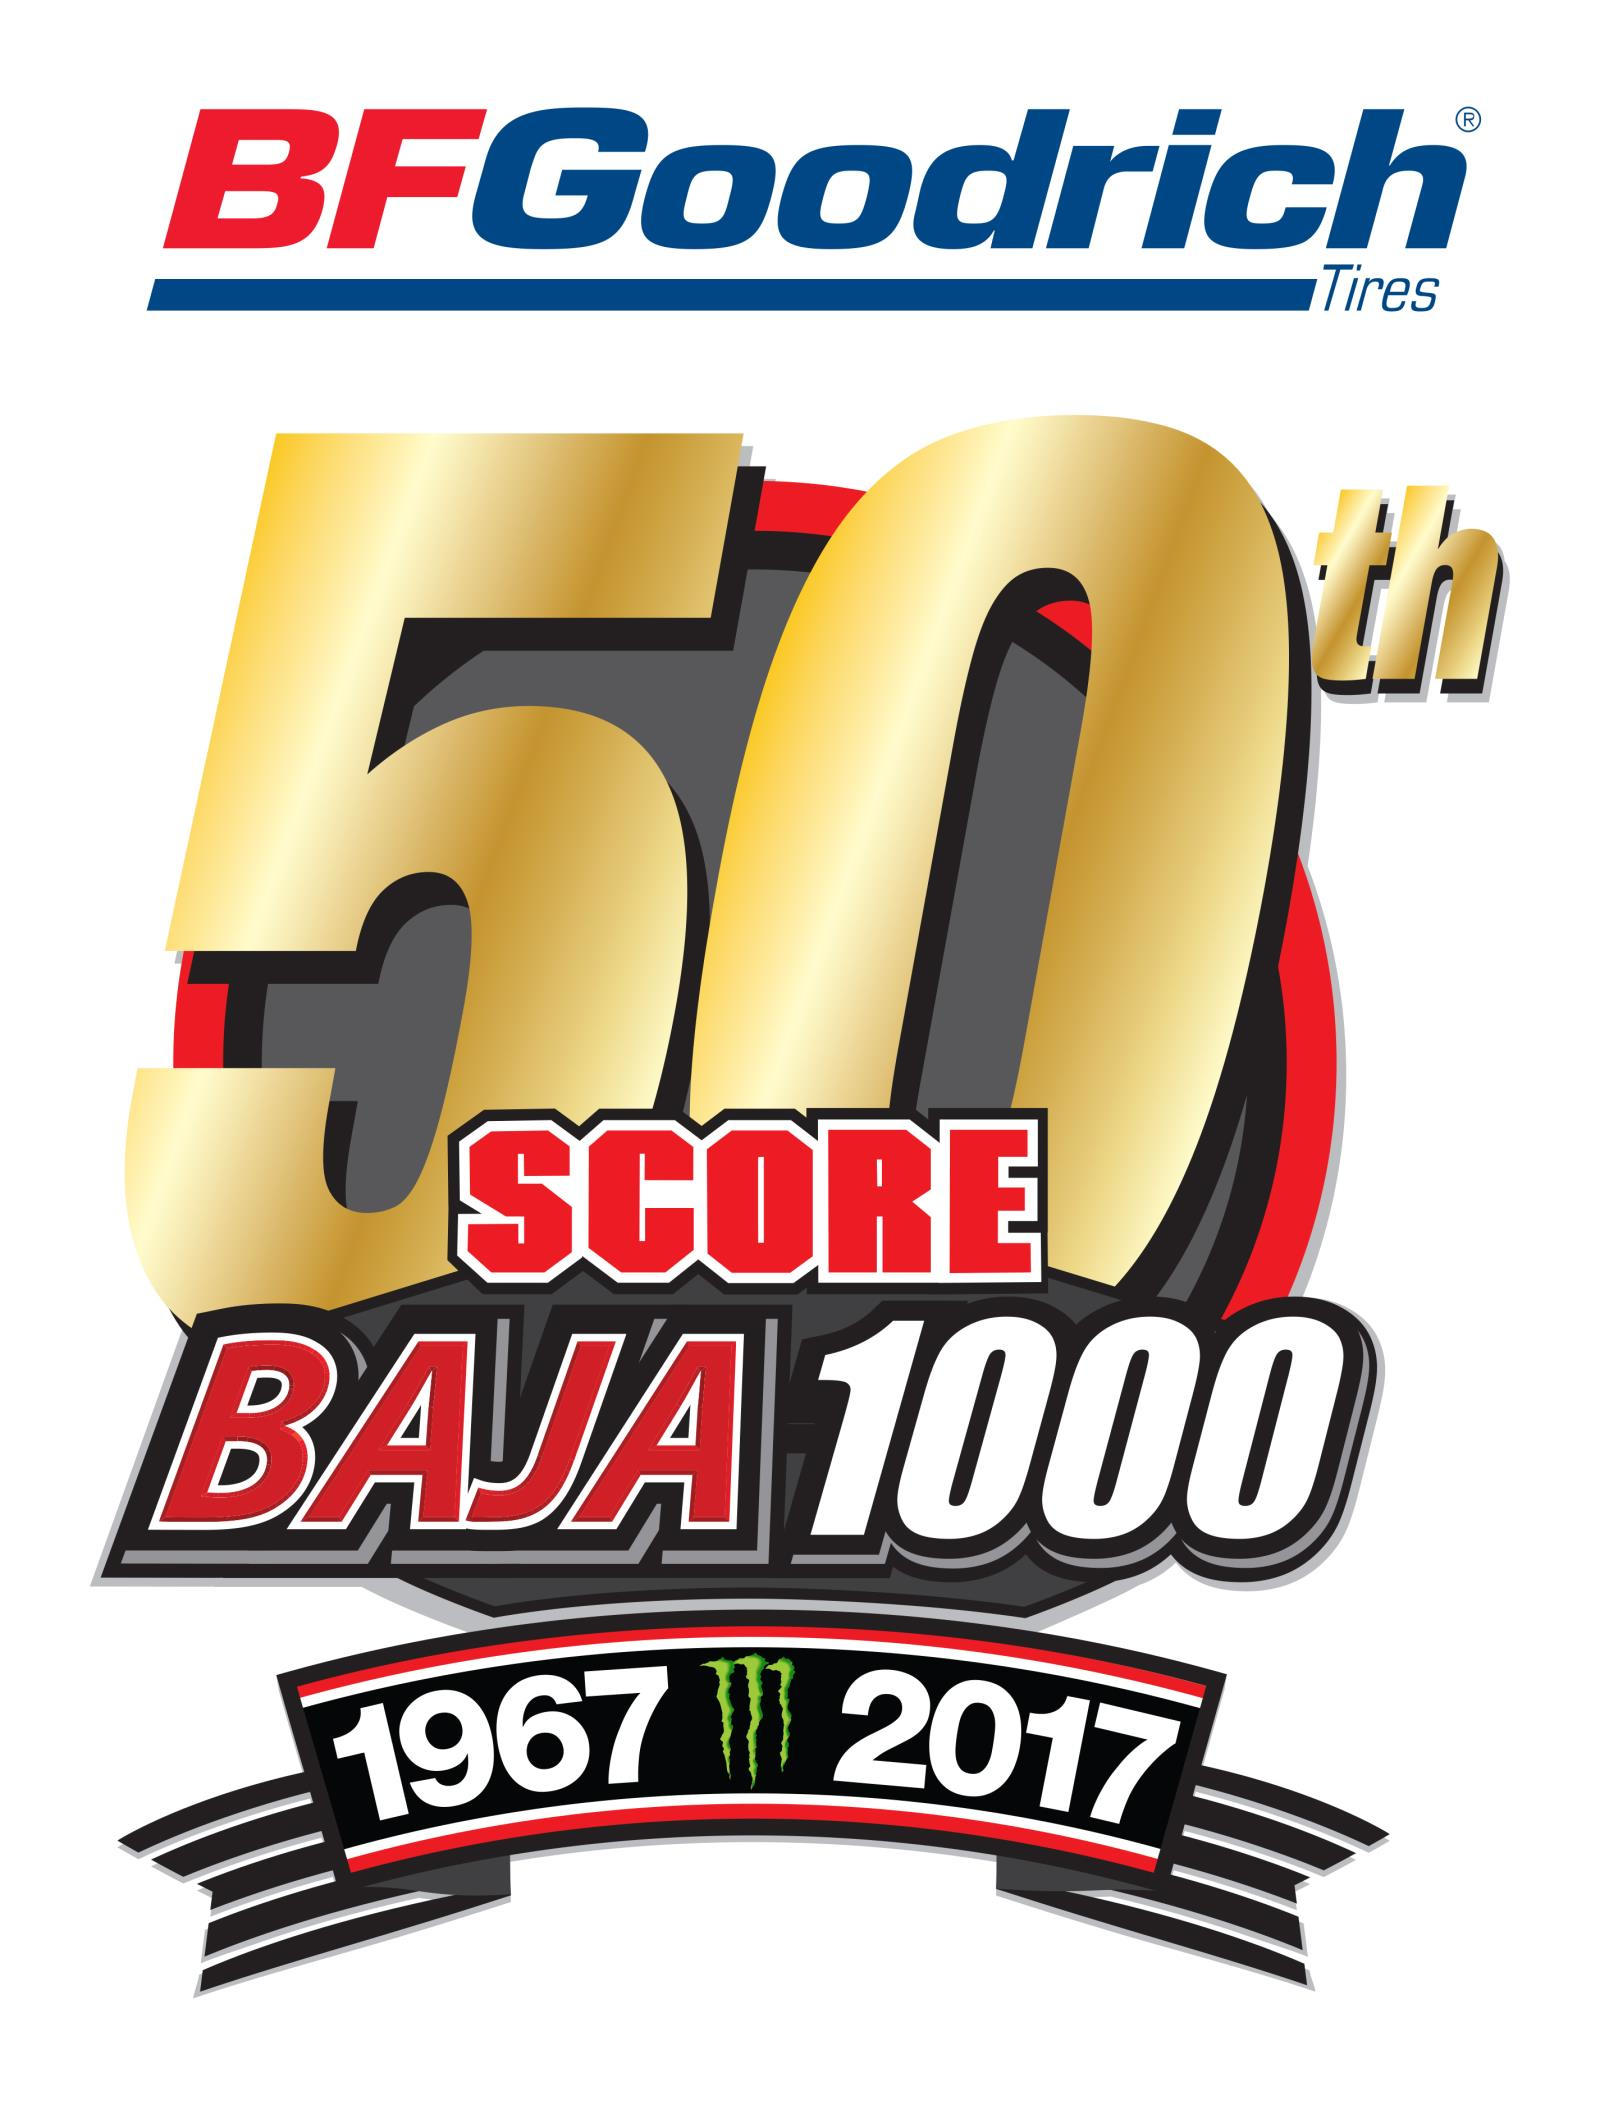 SCORE_Baja1000_50th_BFG_v1_May_29_2017.jpg